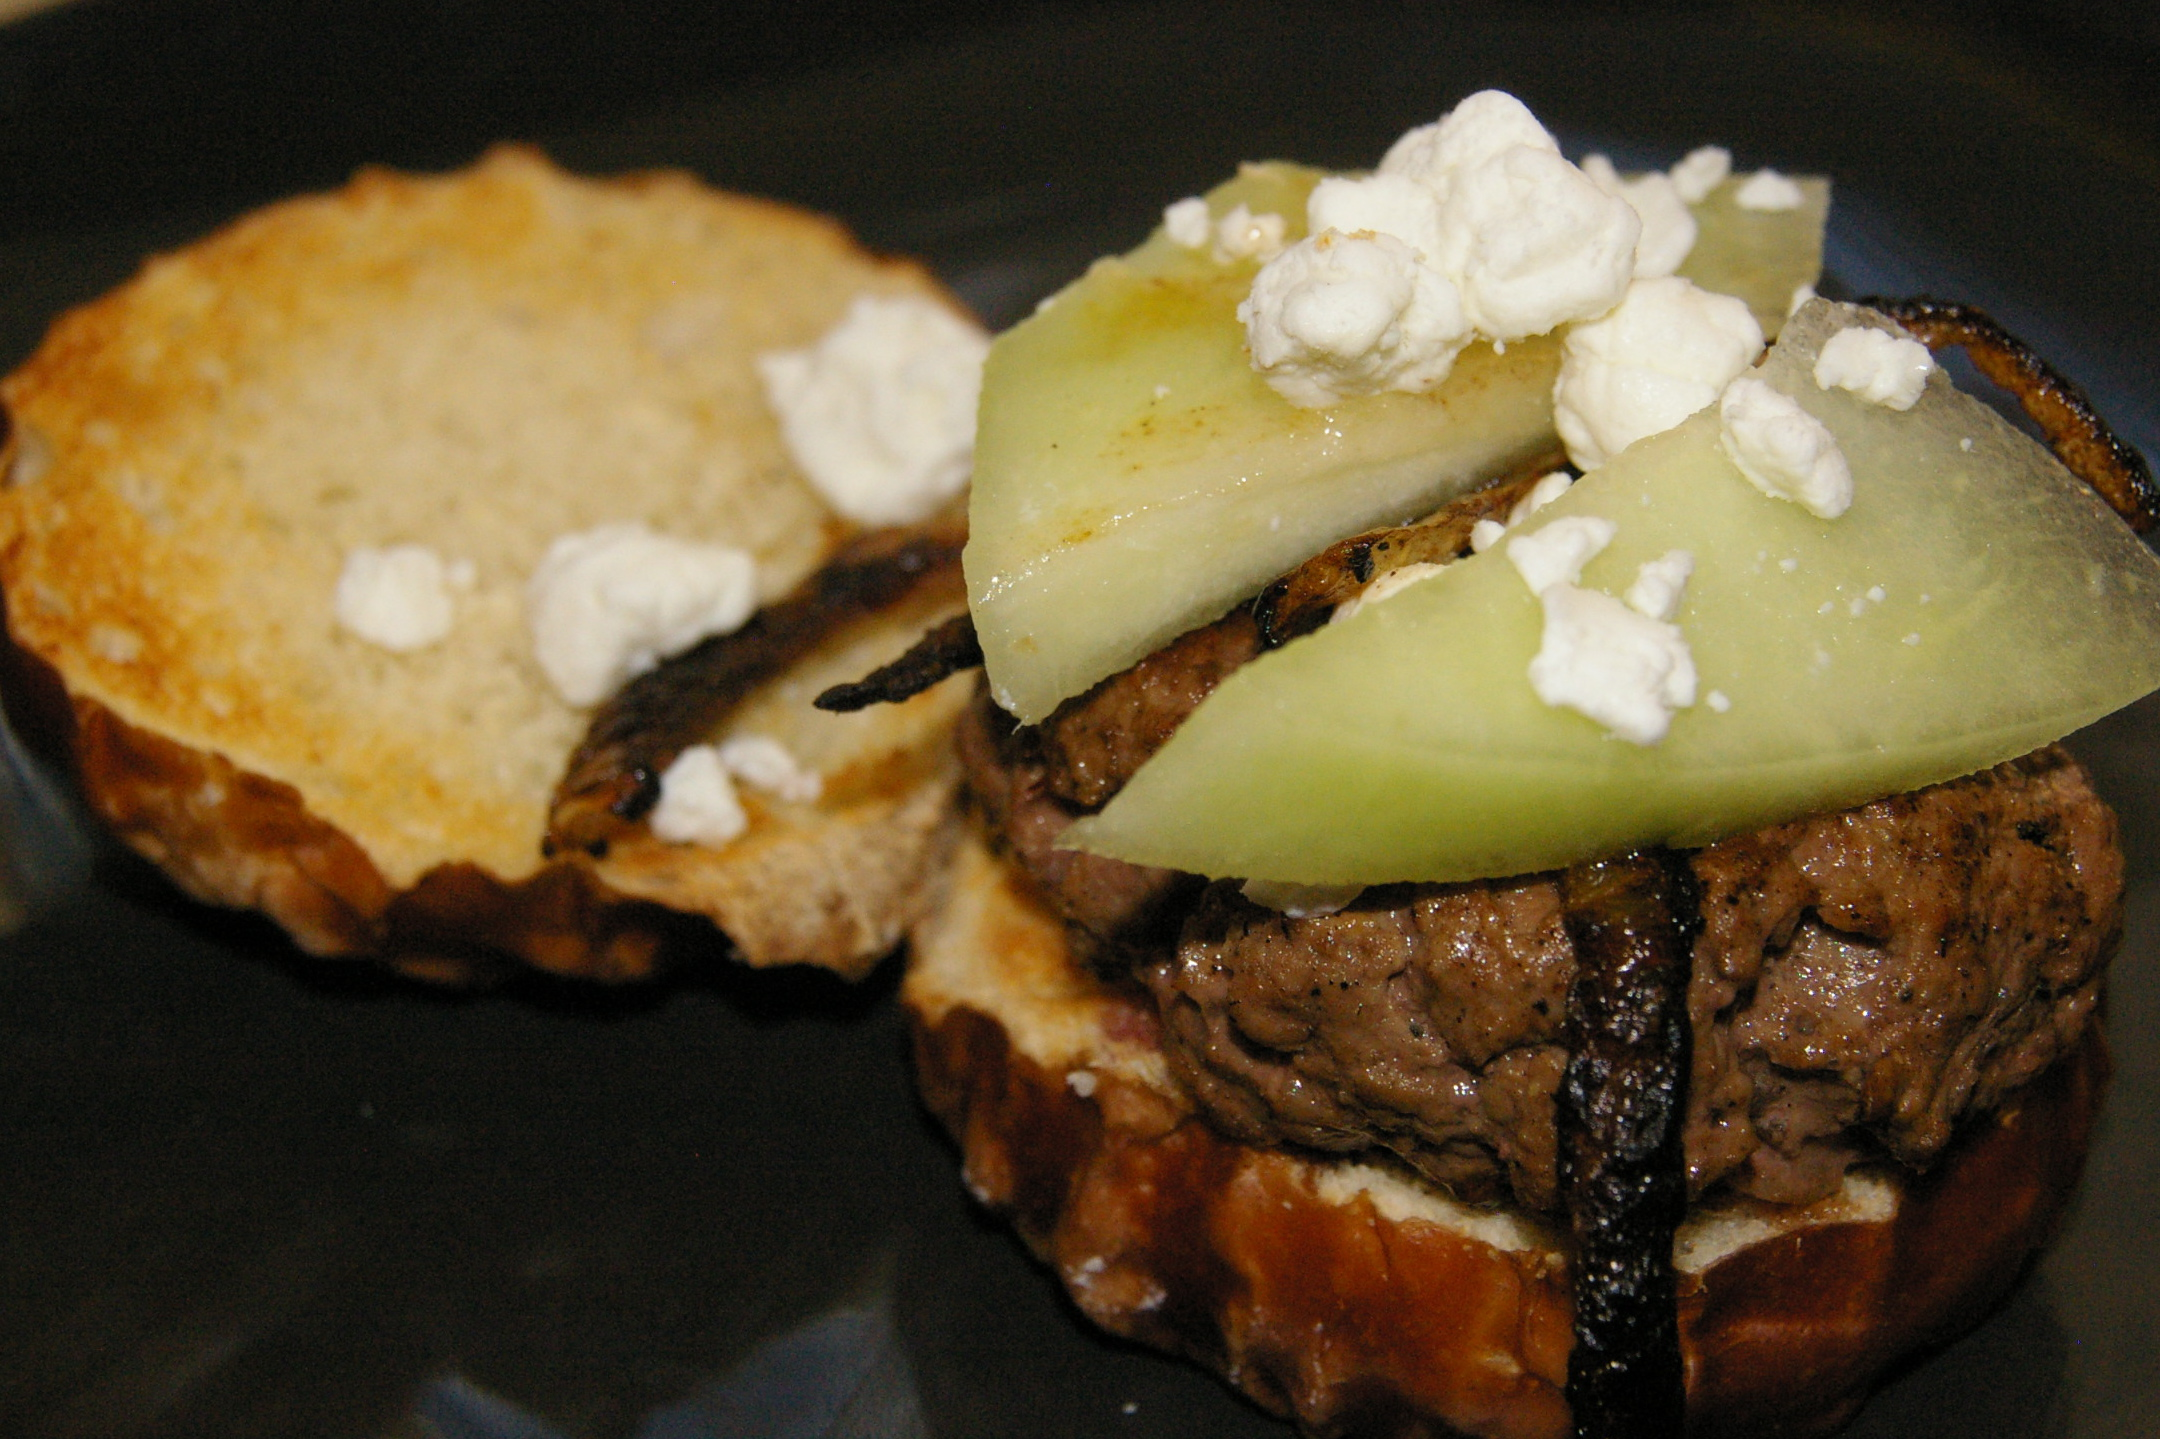 Vidalia Onion Burger with Honeydew Melon, Caramelized Onions and Goat Cheese